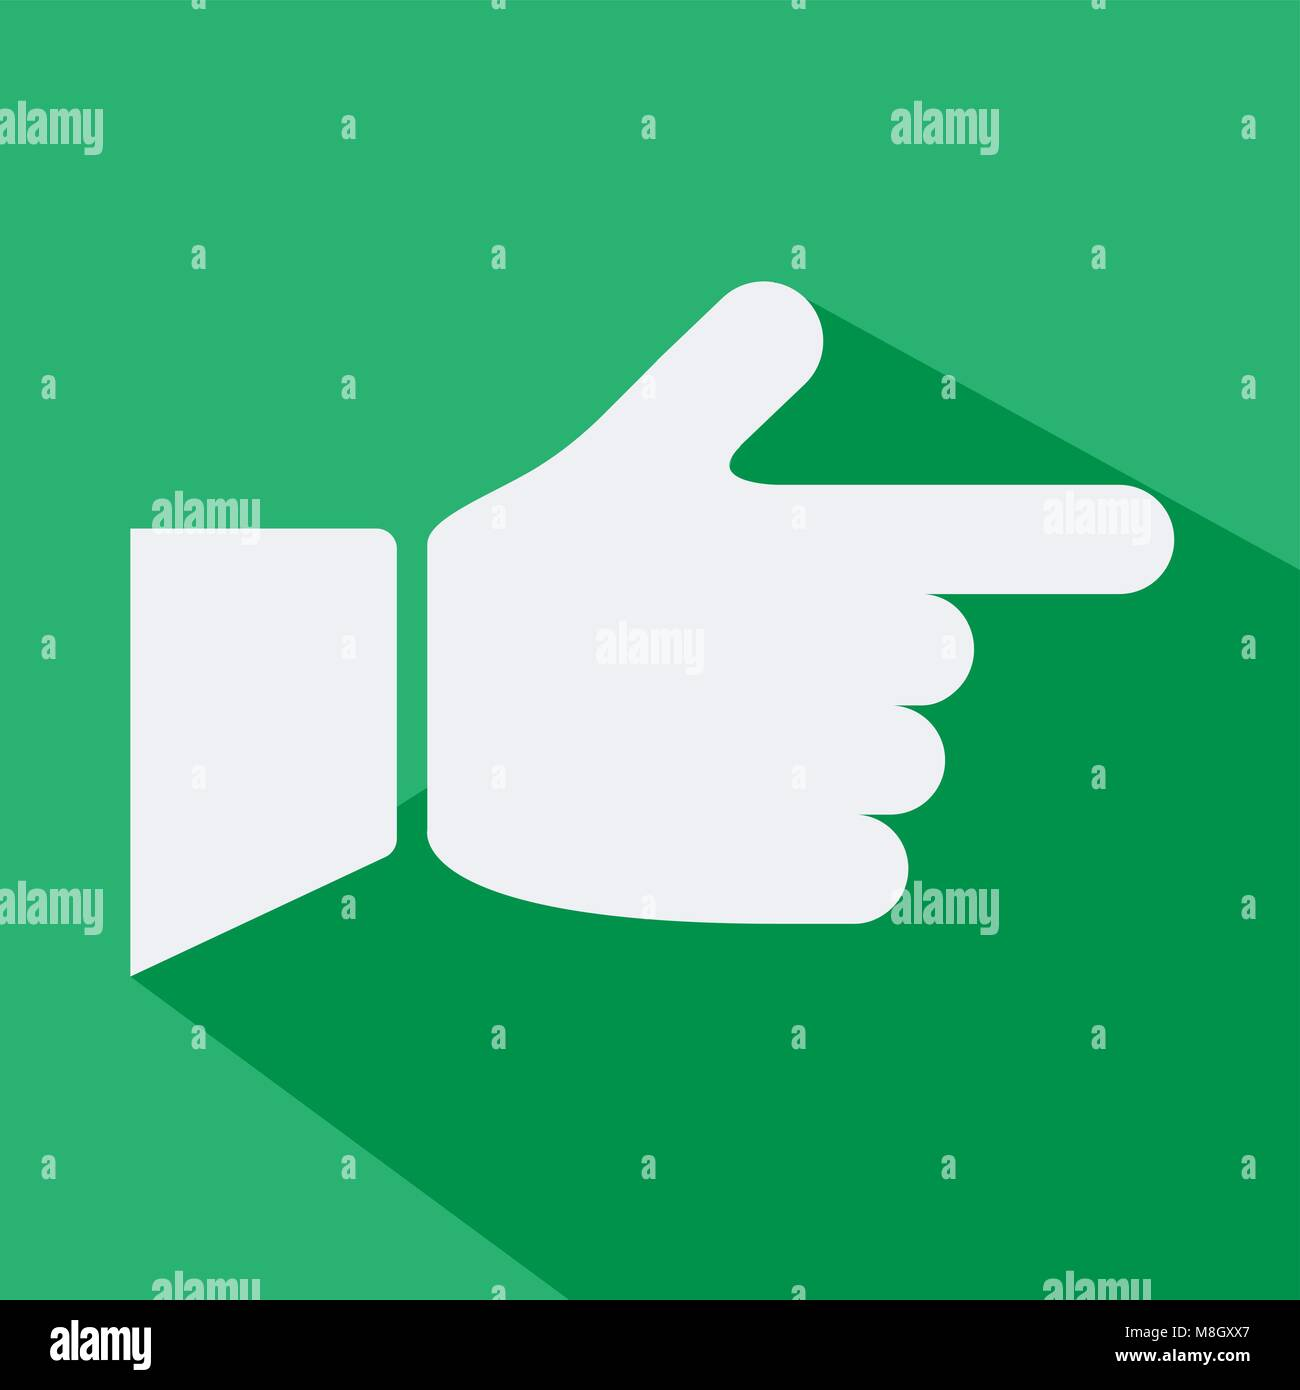 design vector of flat icon with concept direction hand symbol - Stock Vector